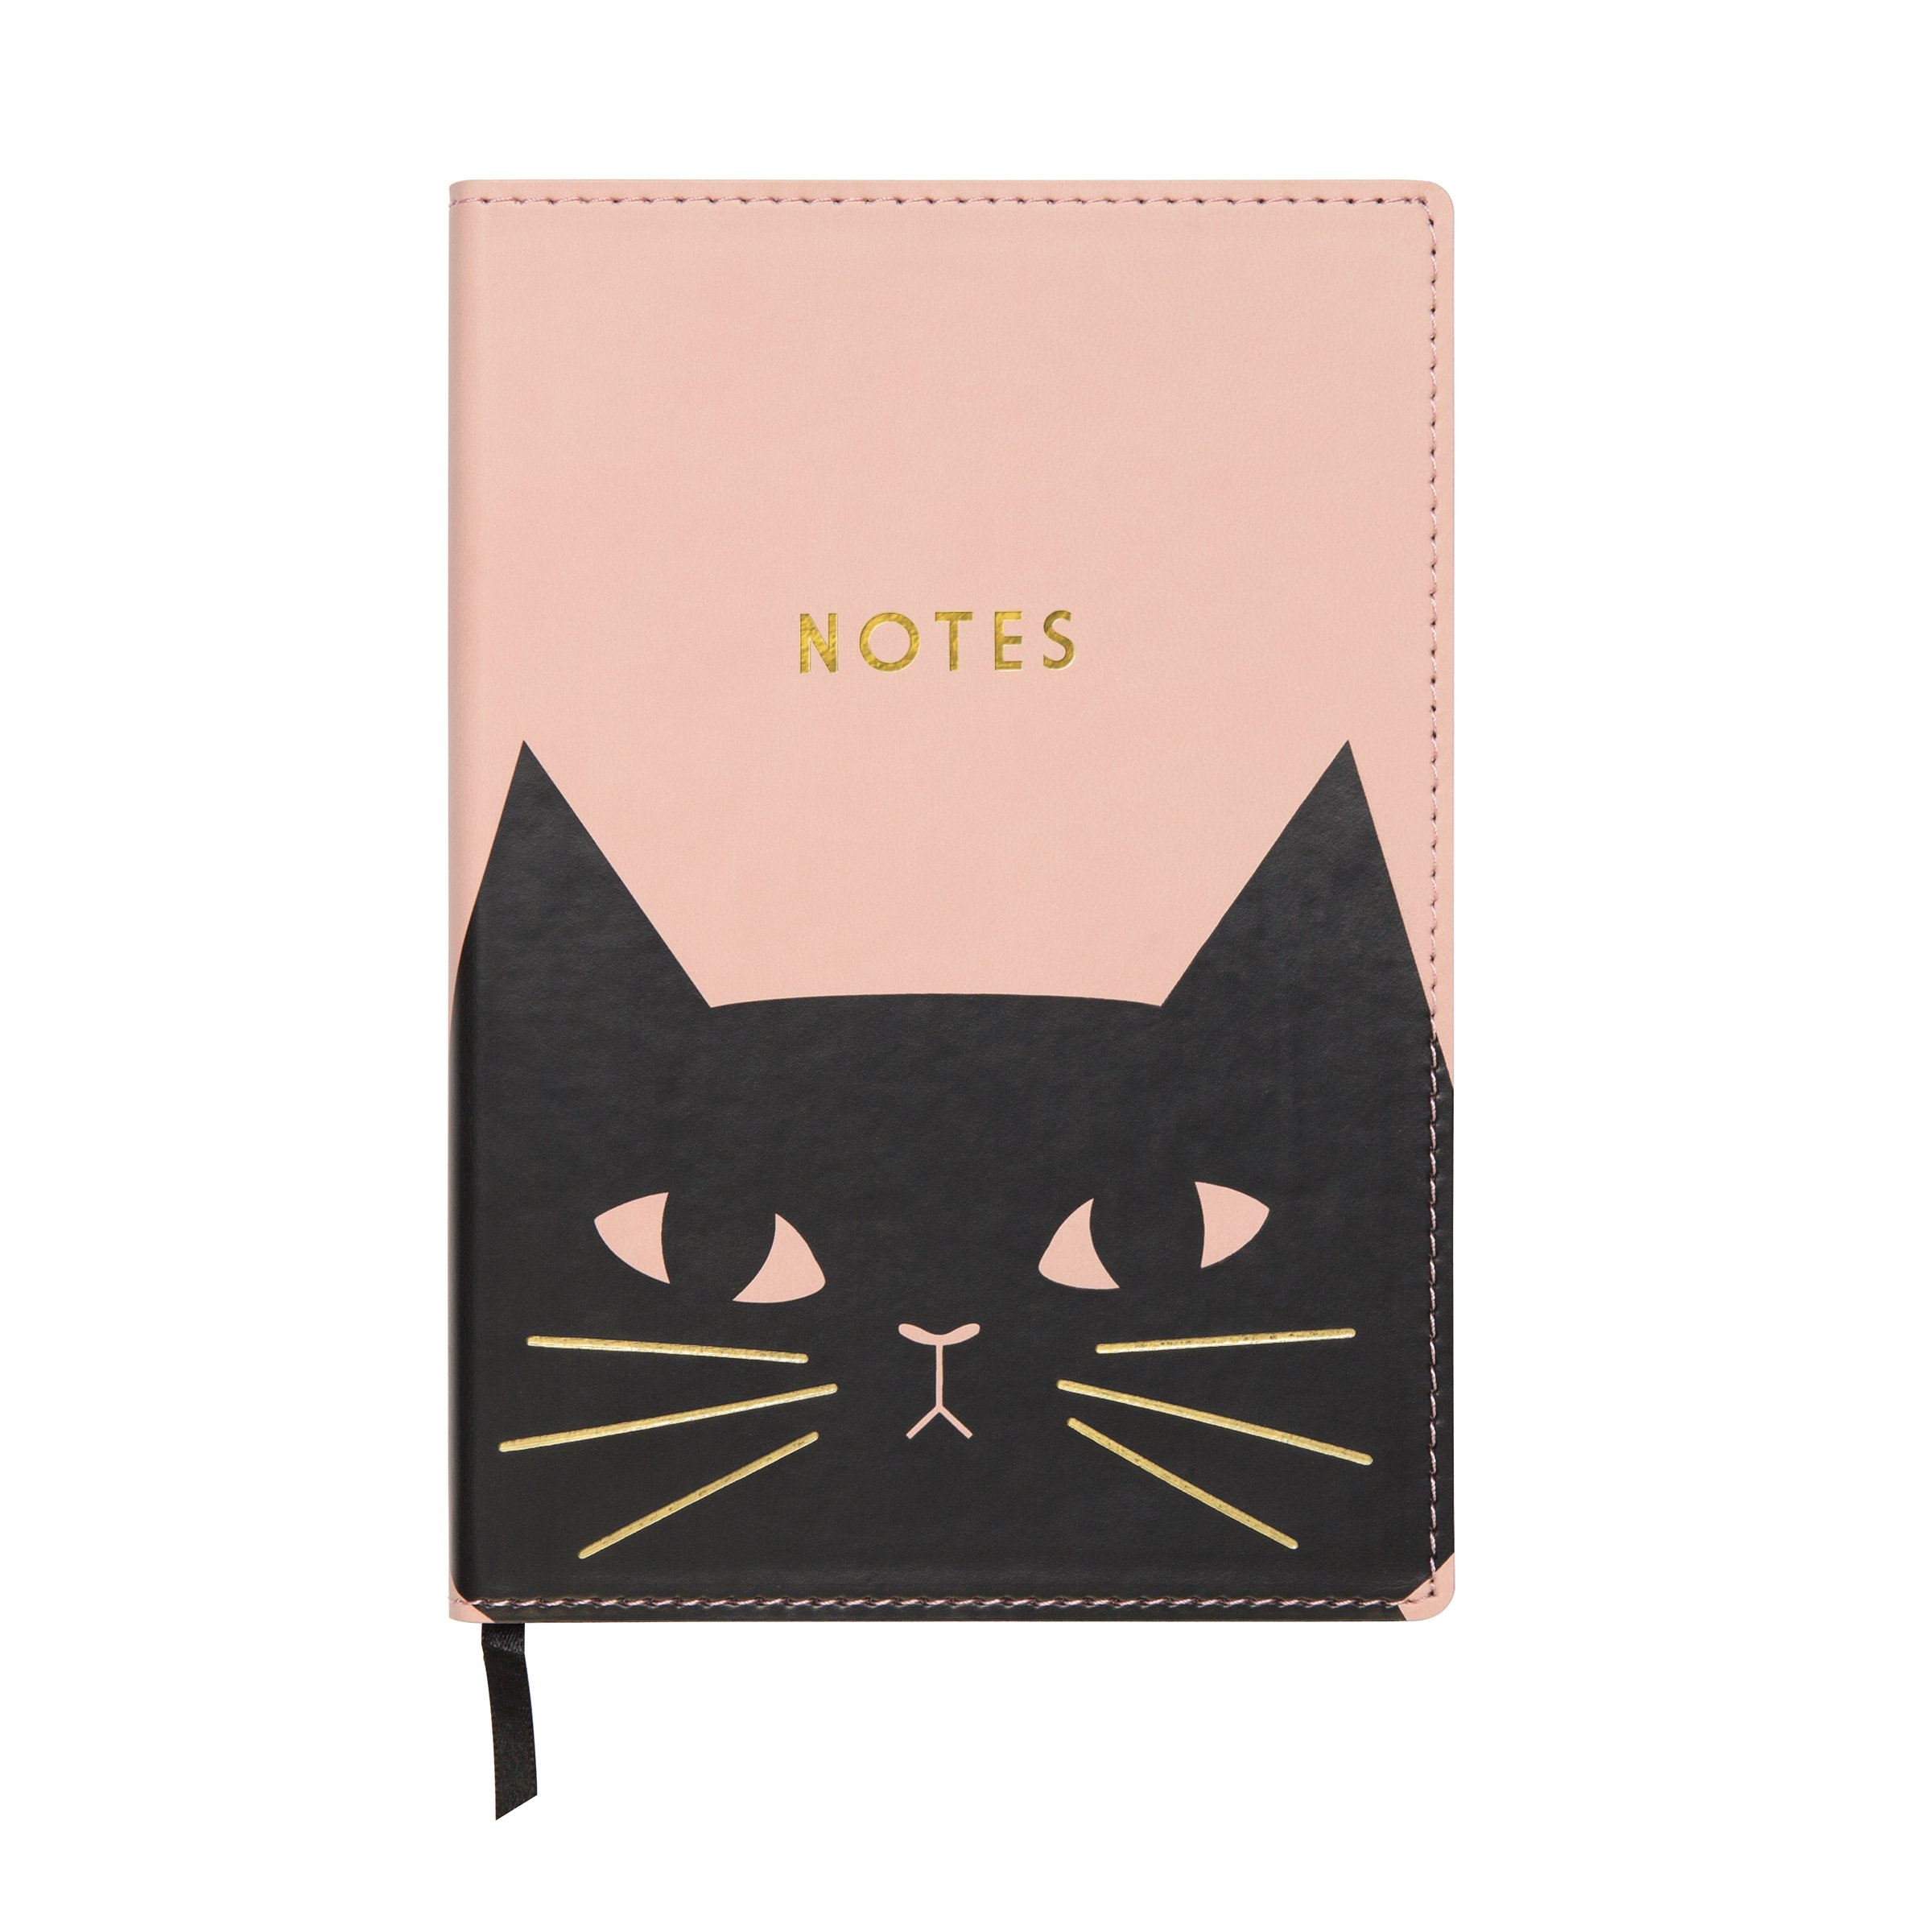 C.R. Gibson Pink 'Black Cat' Leatherette Journal Notebook, 160 Pages, 5.5'' x 8'' (J18-18869)